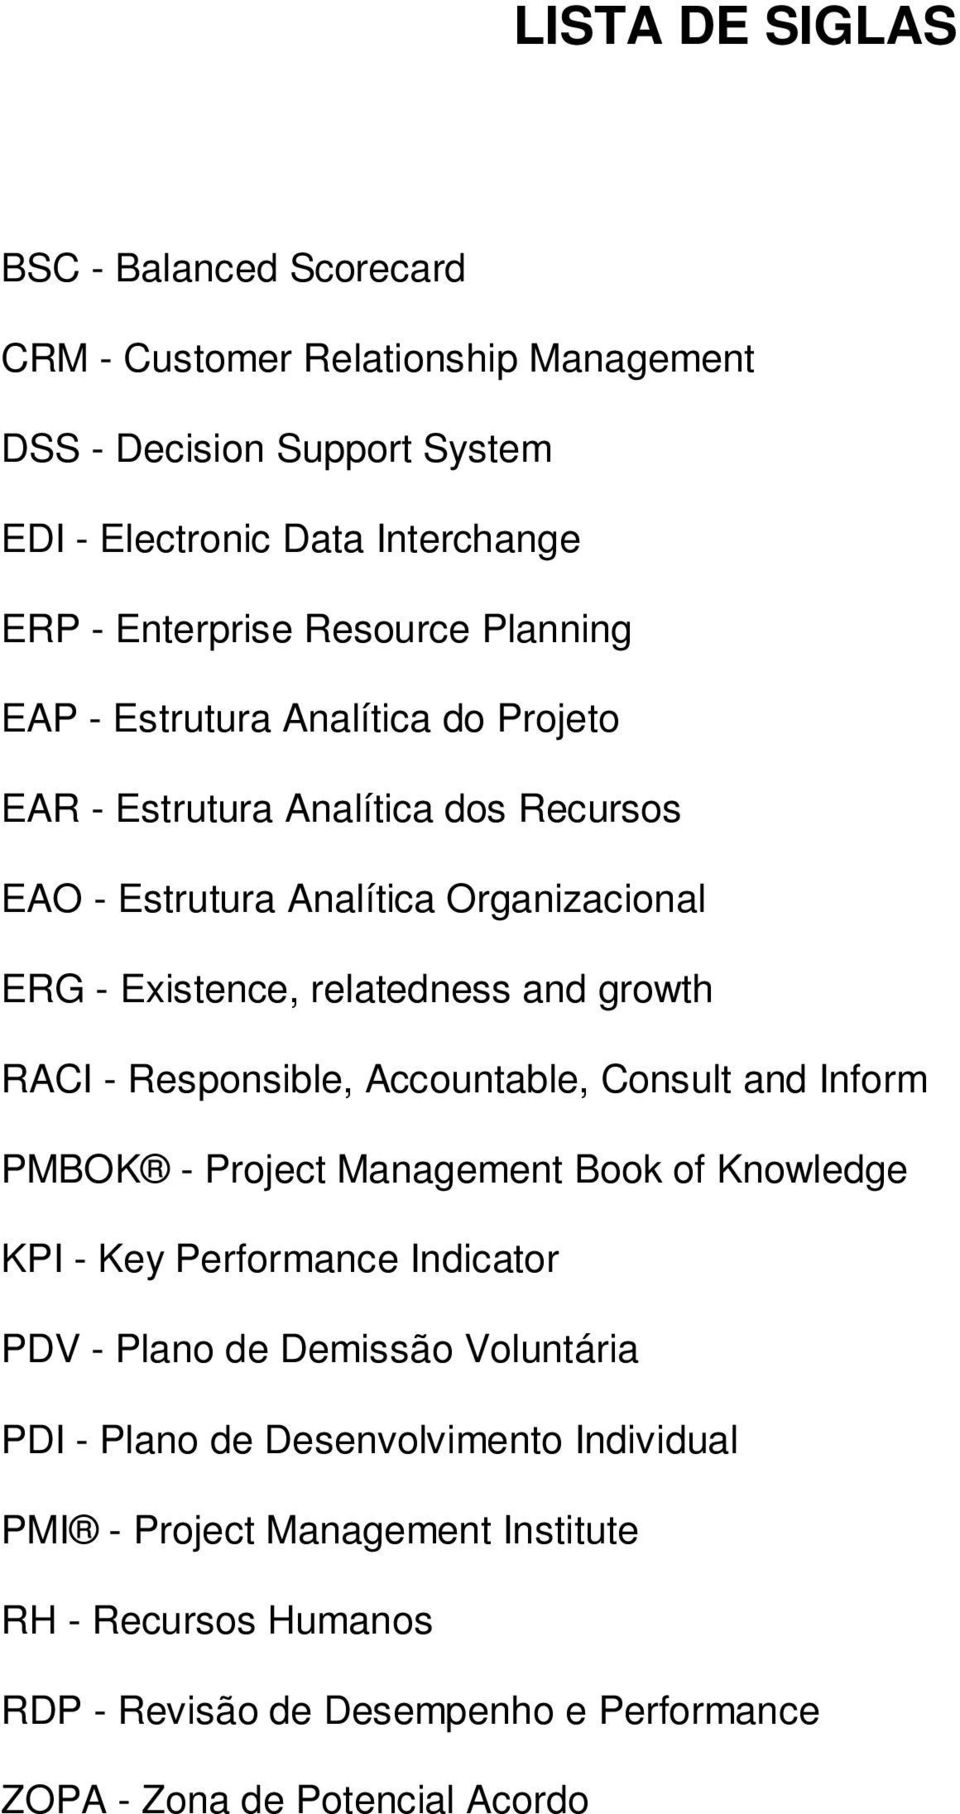 growth RACI - Responsible, Accountable, Consult and Inform PMBOK - Project Management Book of Knowledge KPI - Key Performance Indicator PDV - Plano de Demissão